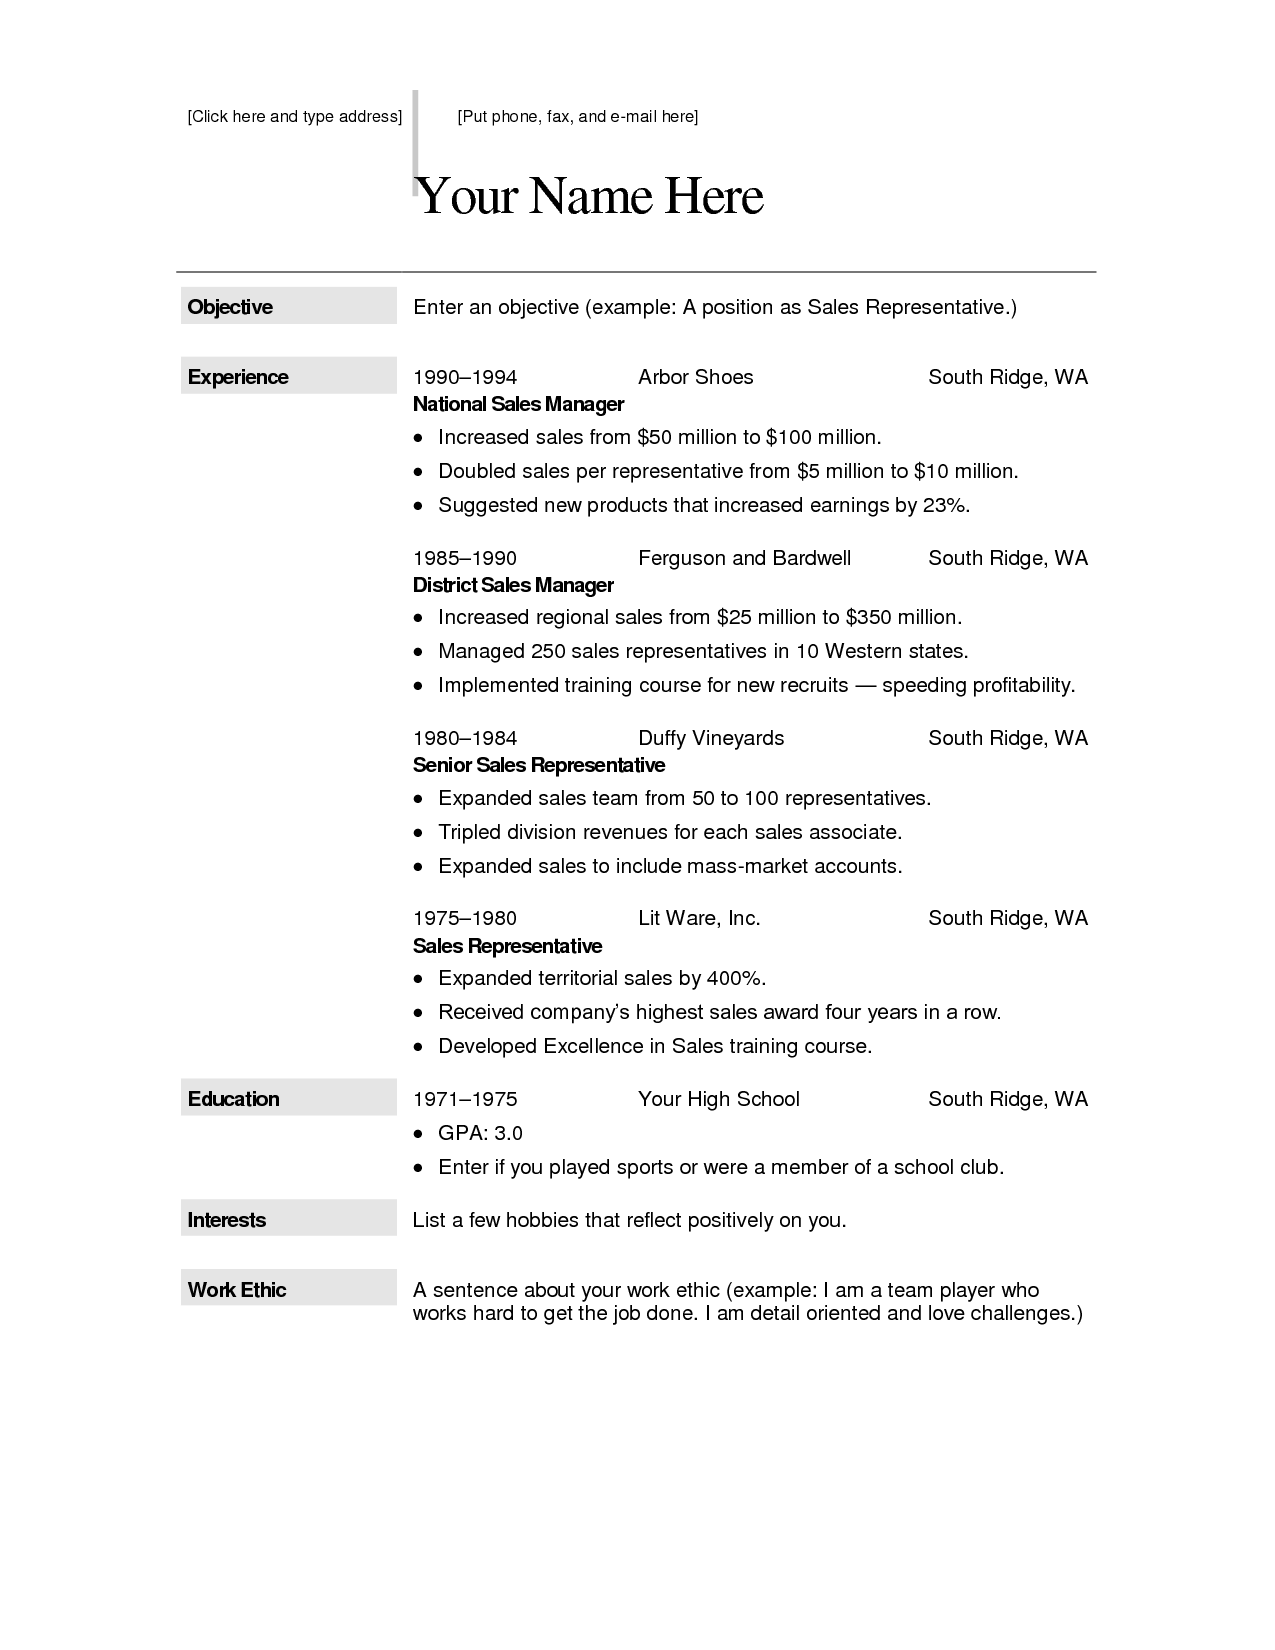 Resume Template For Microsoft Word 2010 Free Creative Resume Templates For Macfree Creative Resume